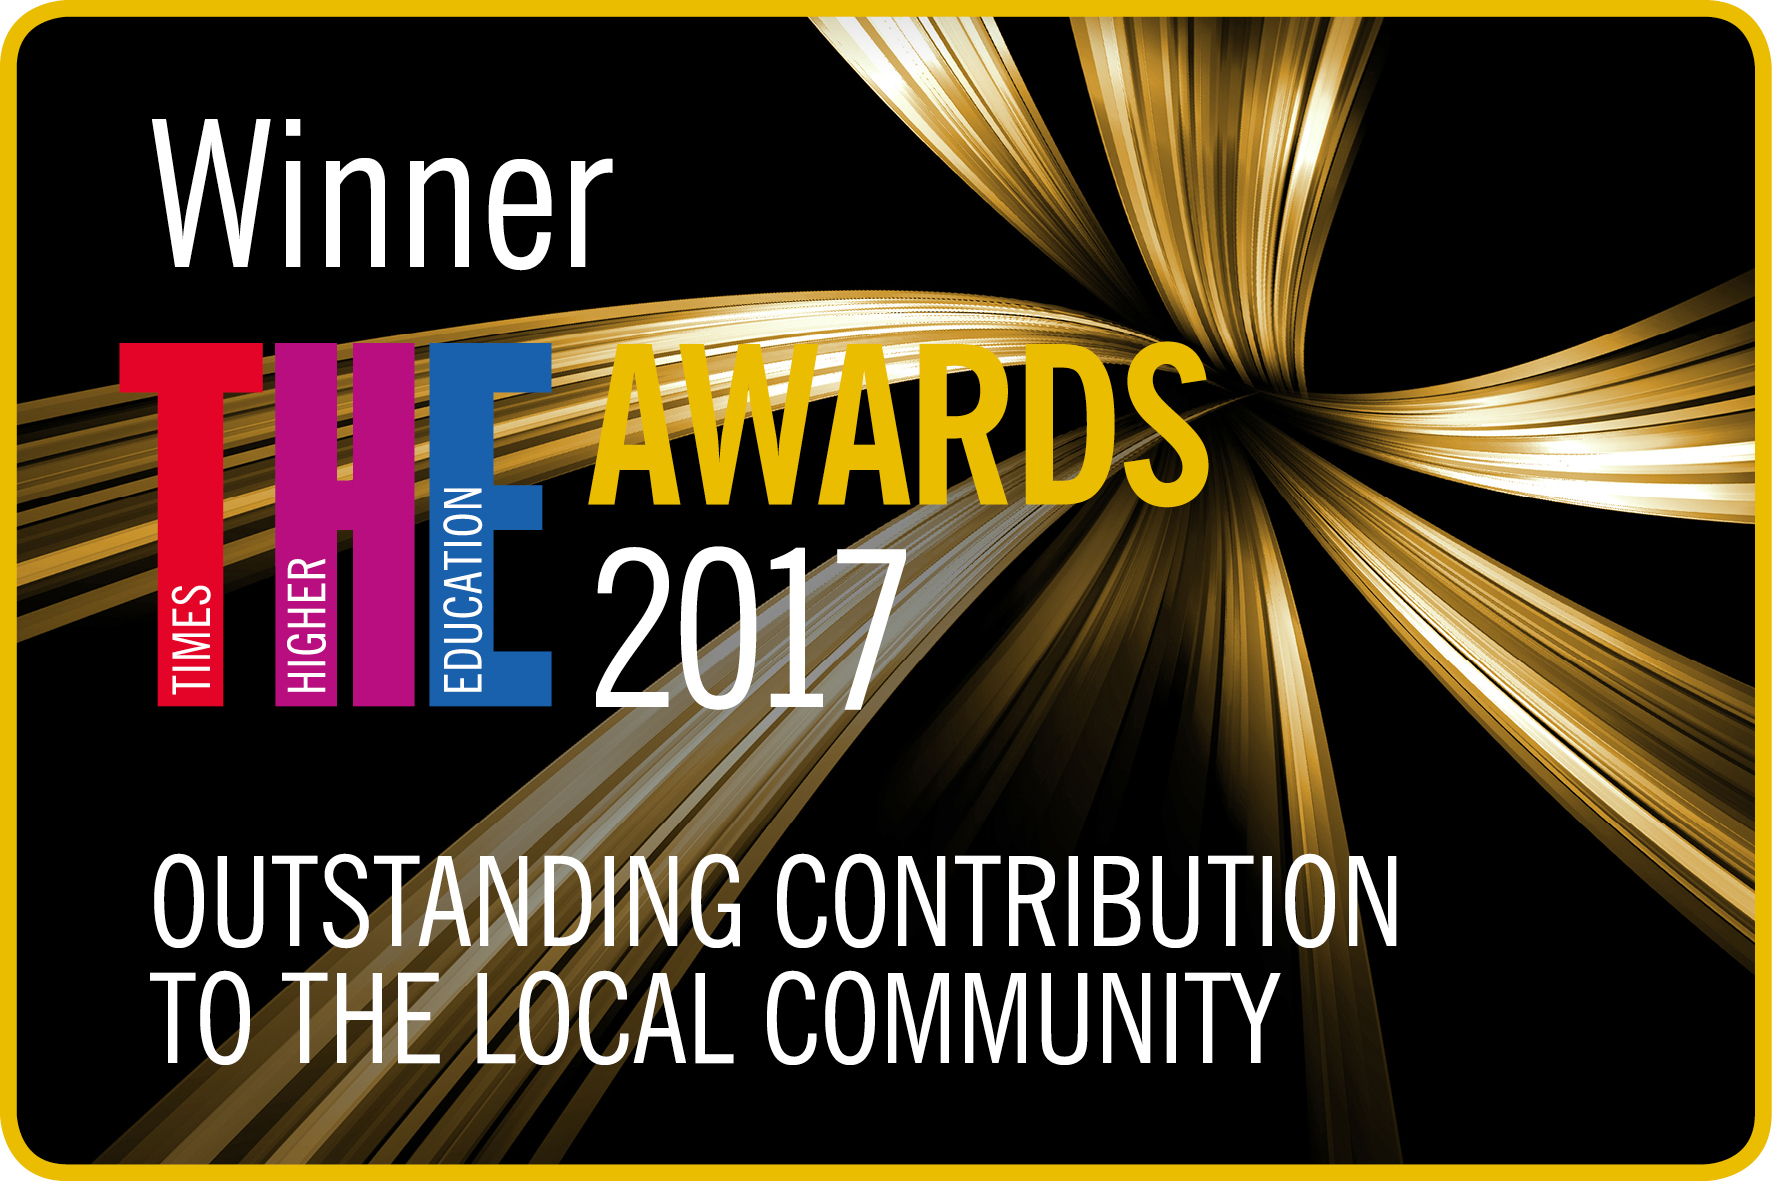 THE-Awards-2017-Winner-Badge-Local-Community logo